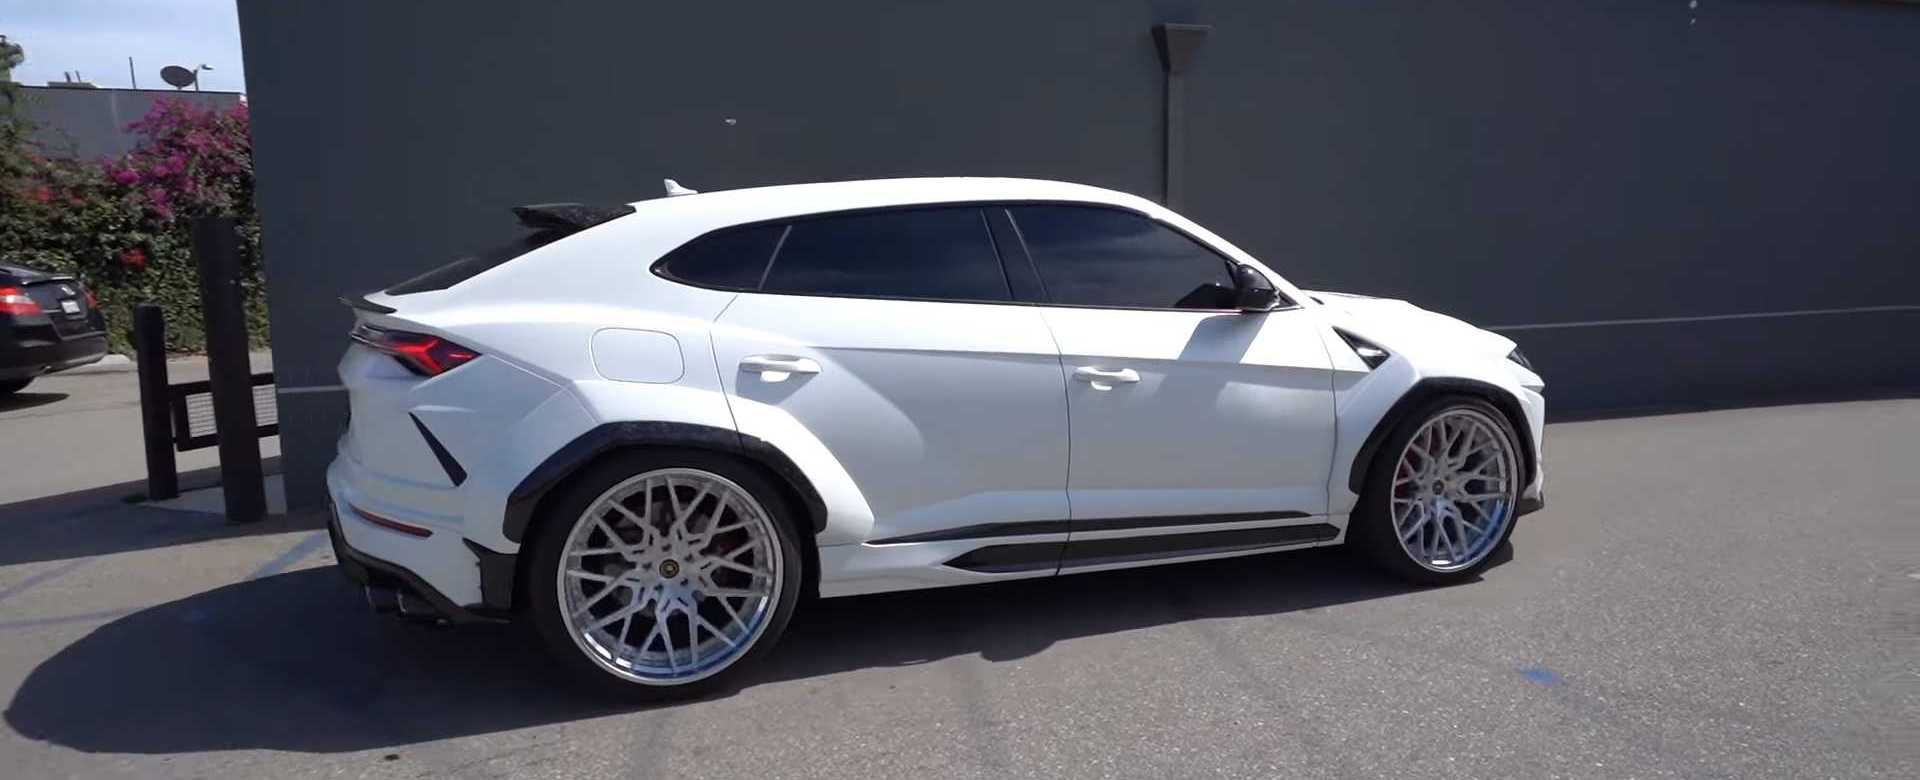 Widebody Lamborghini Urus Is Wicked, Wild, And Weirdly Awesome